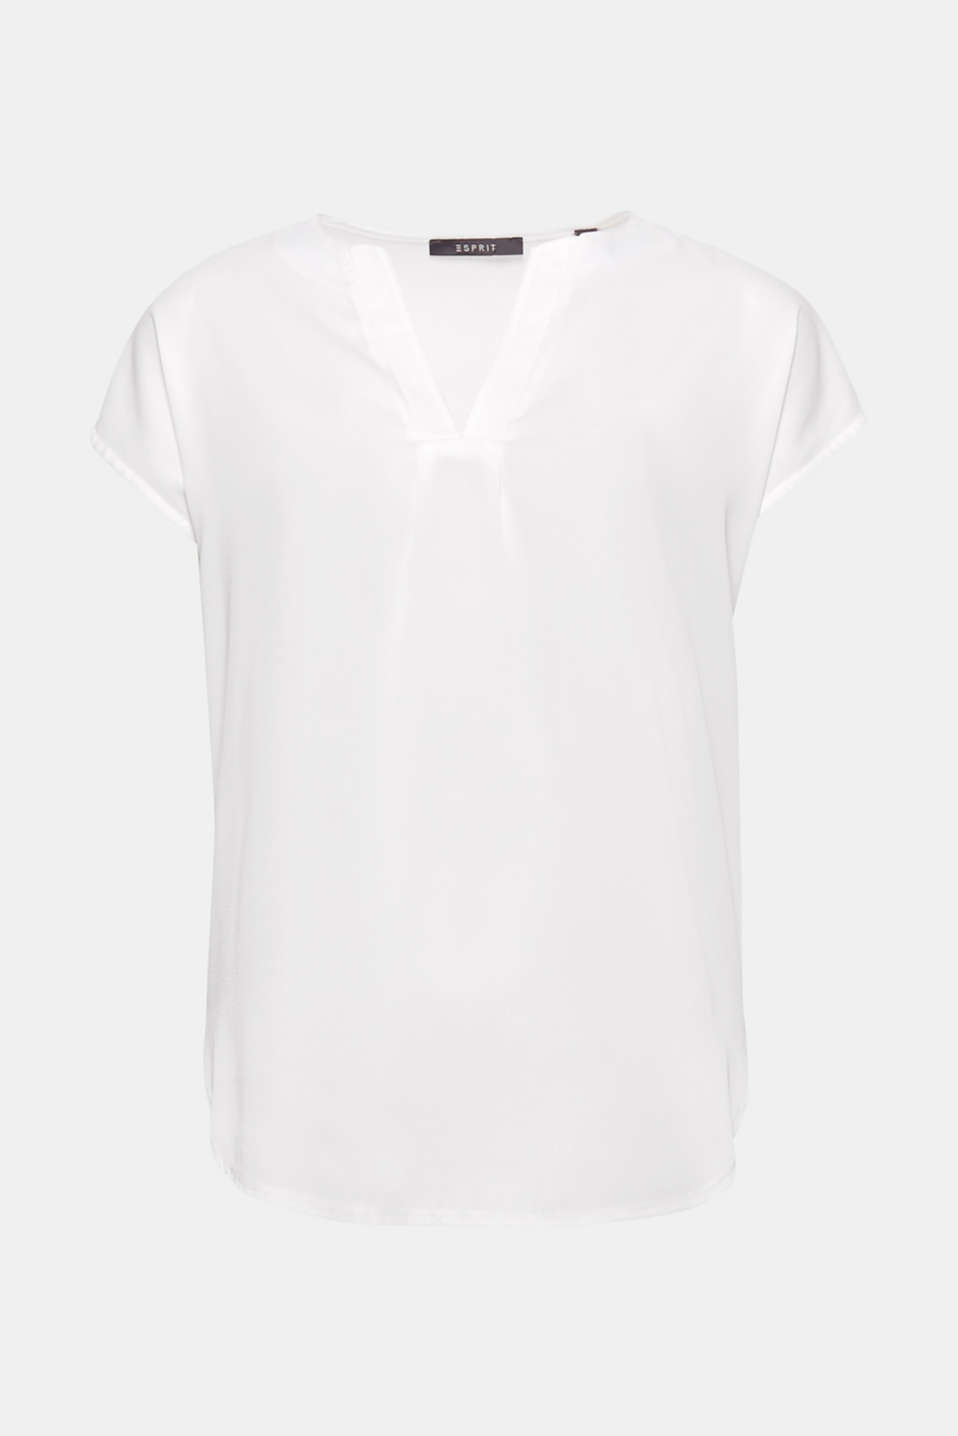 With a rounded hem and V-neckline: blouse top with slightly dropped shoulders.